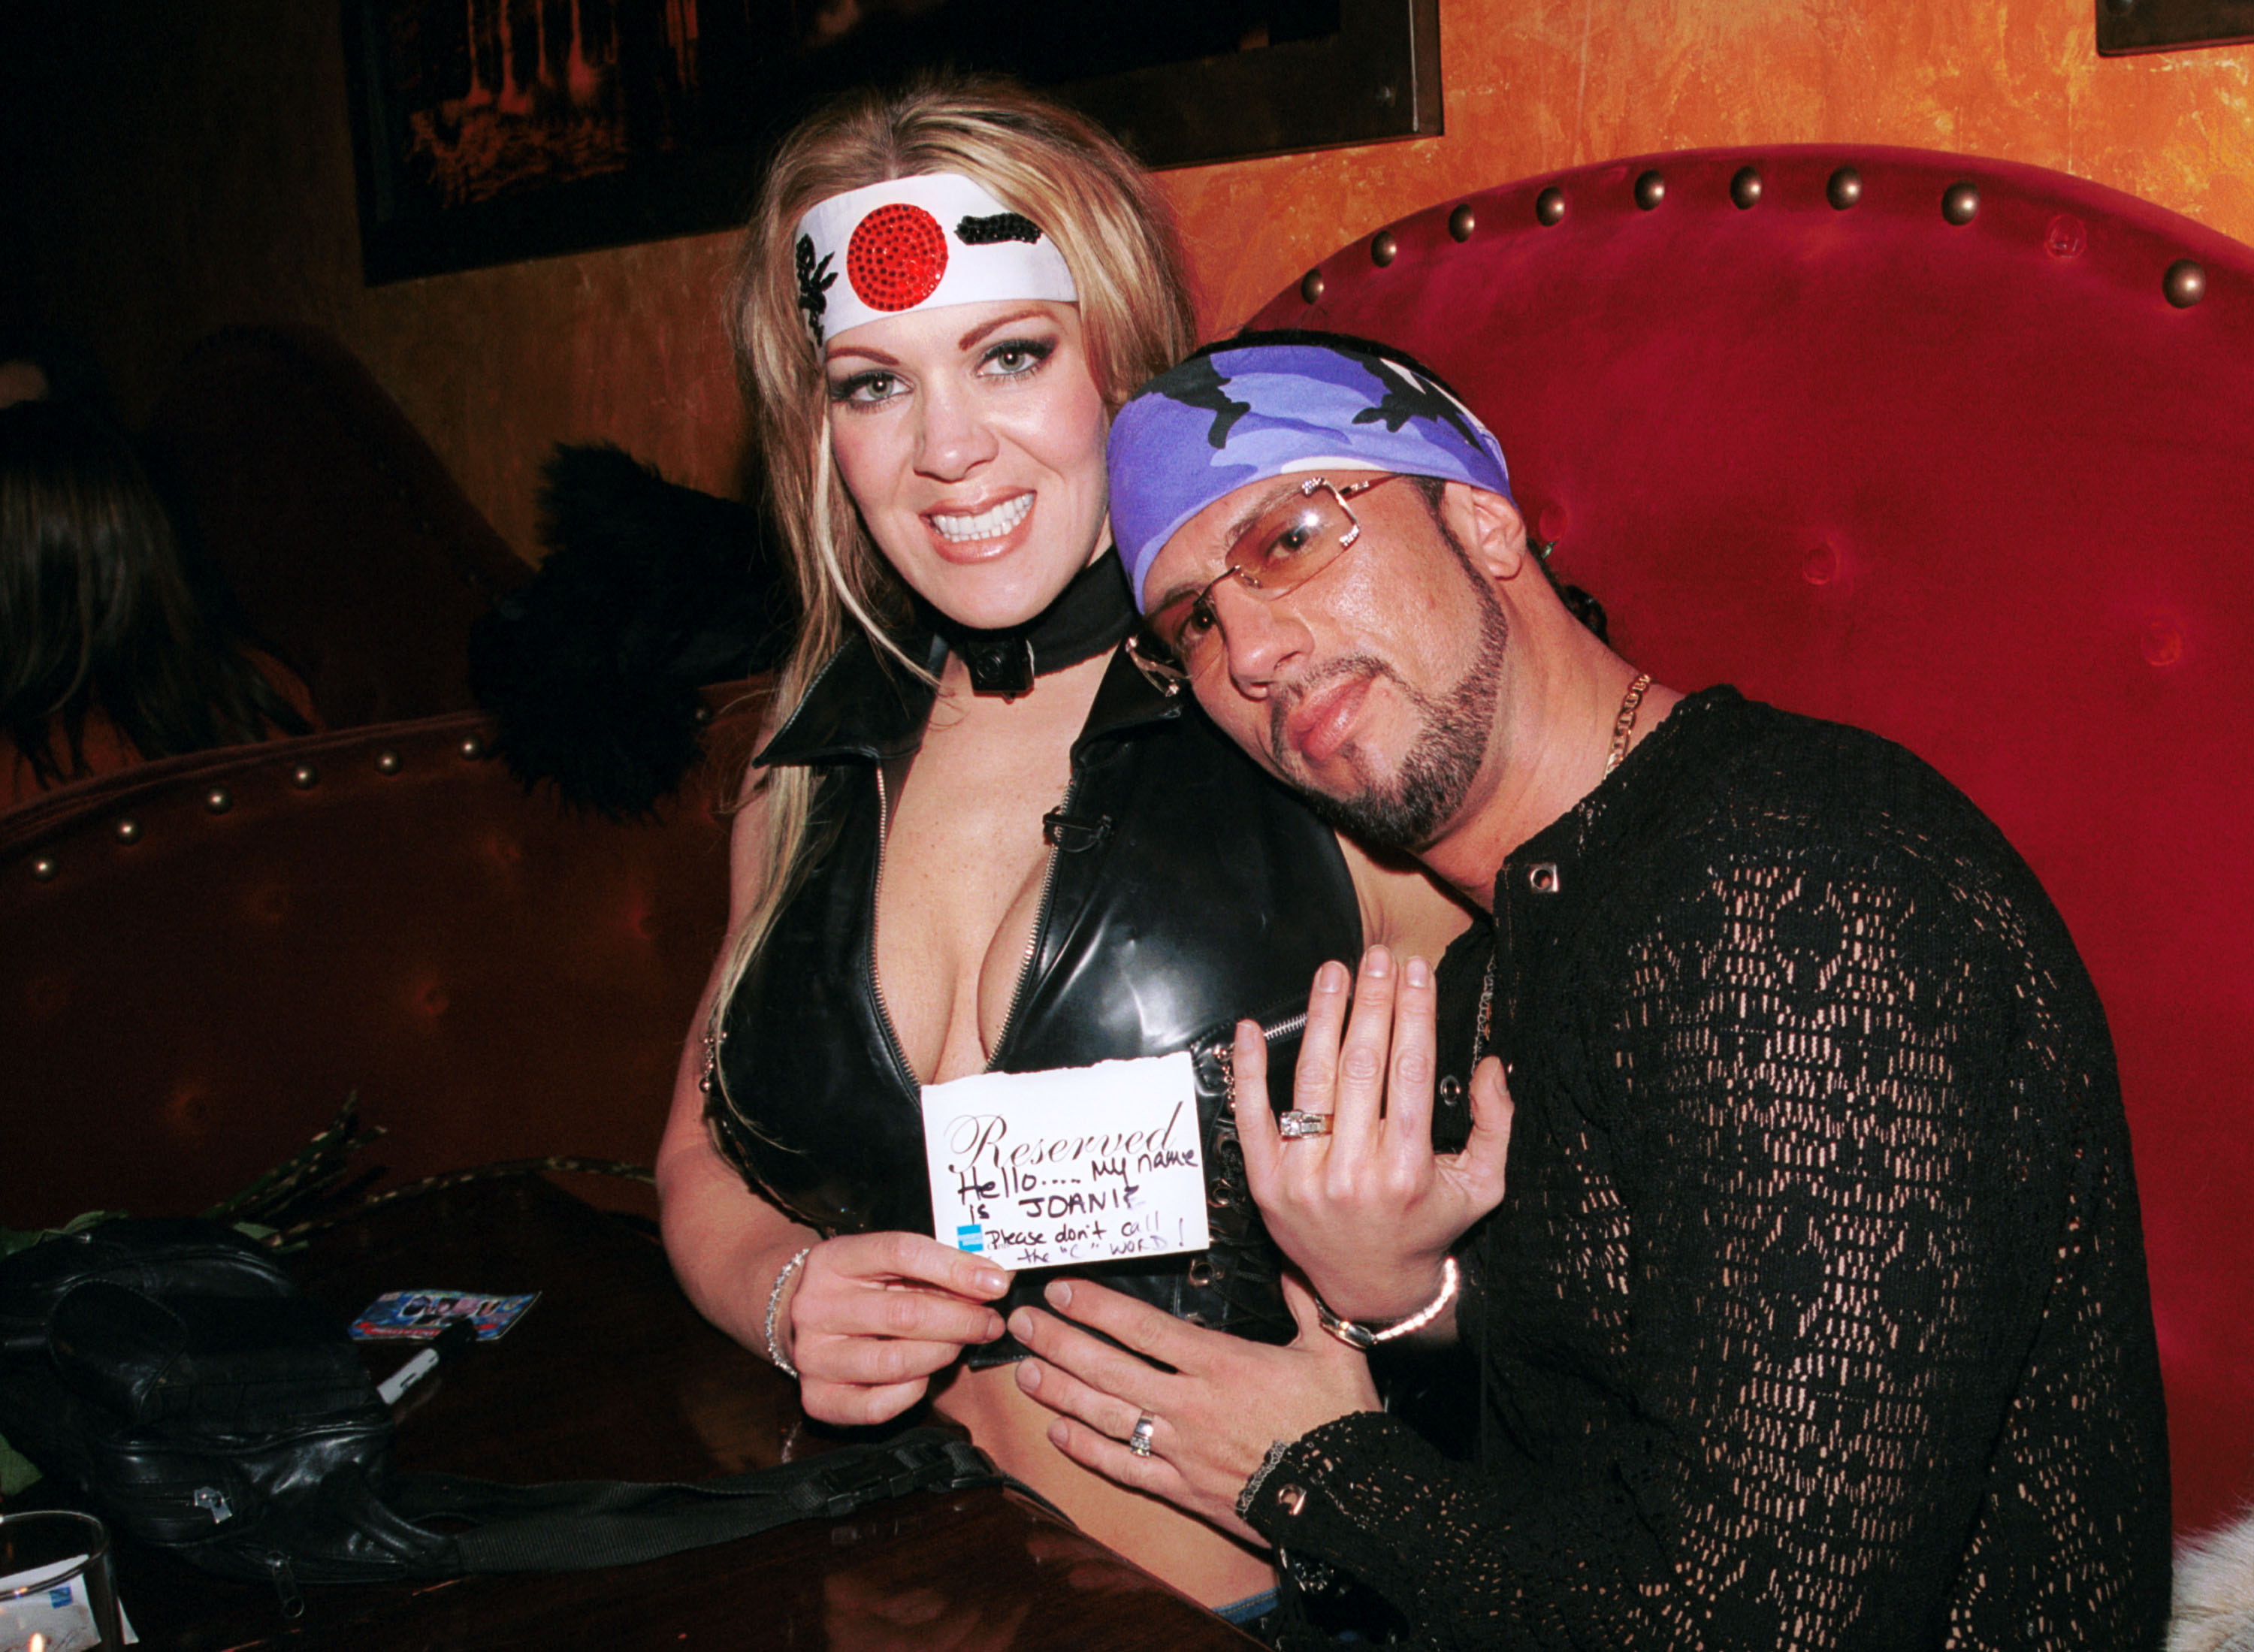 Former female wrestler Joanie Laurer poses with fiance, wrestler Sean Waltman during Barfly 5th year anniversary party on December 18, 2002 in West Hollywood, California. (Photo by David Klein/Getty Images)